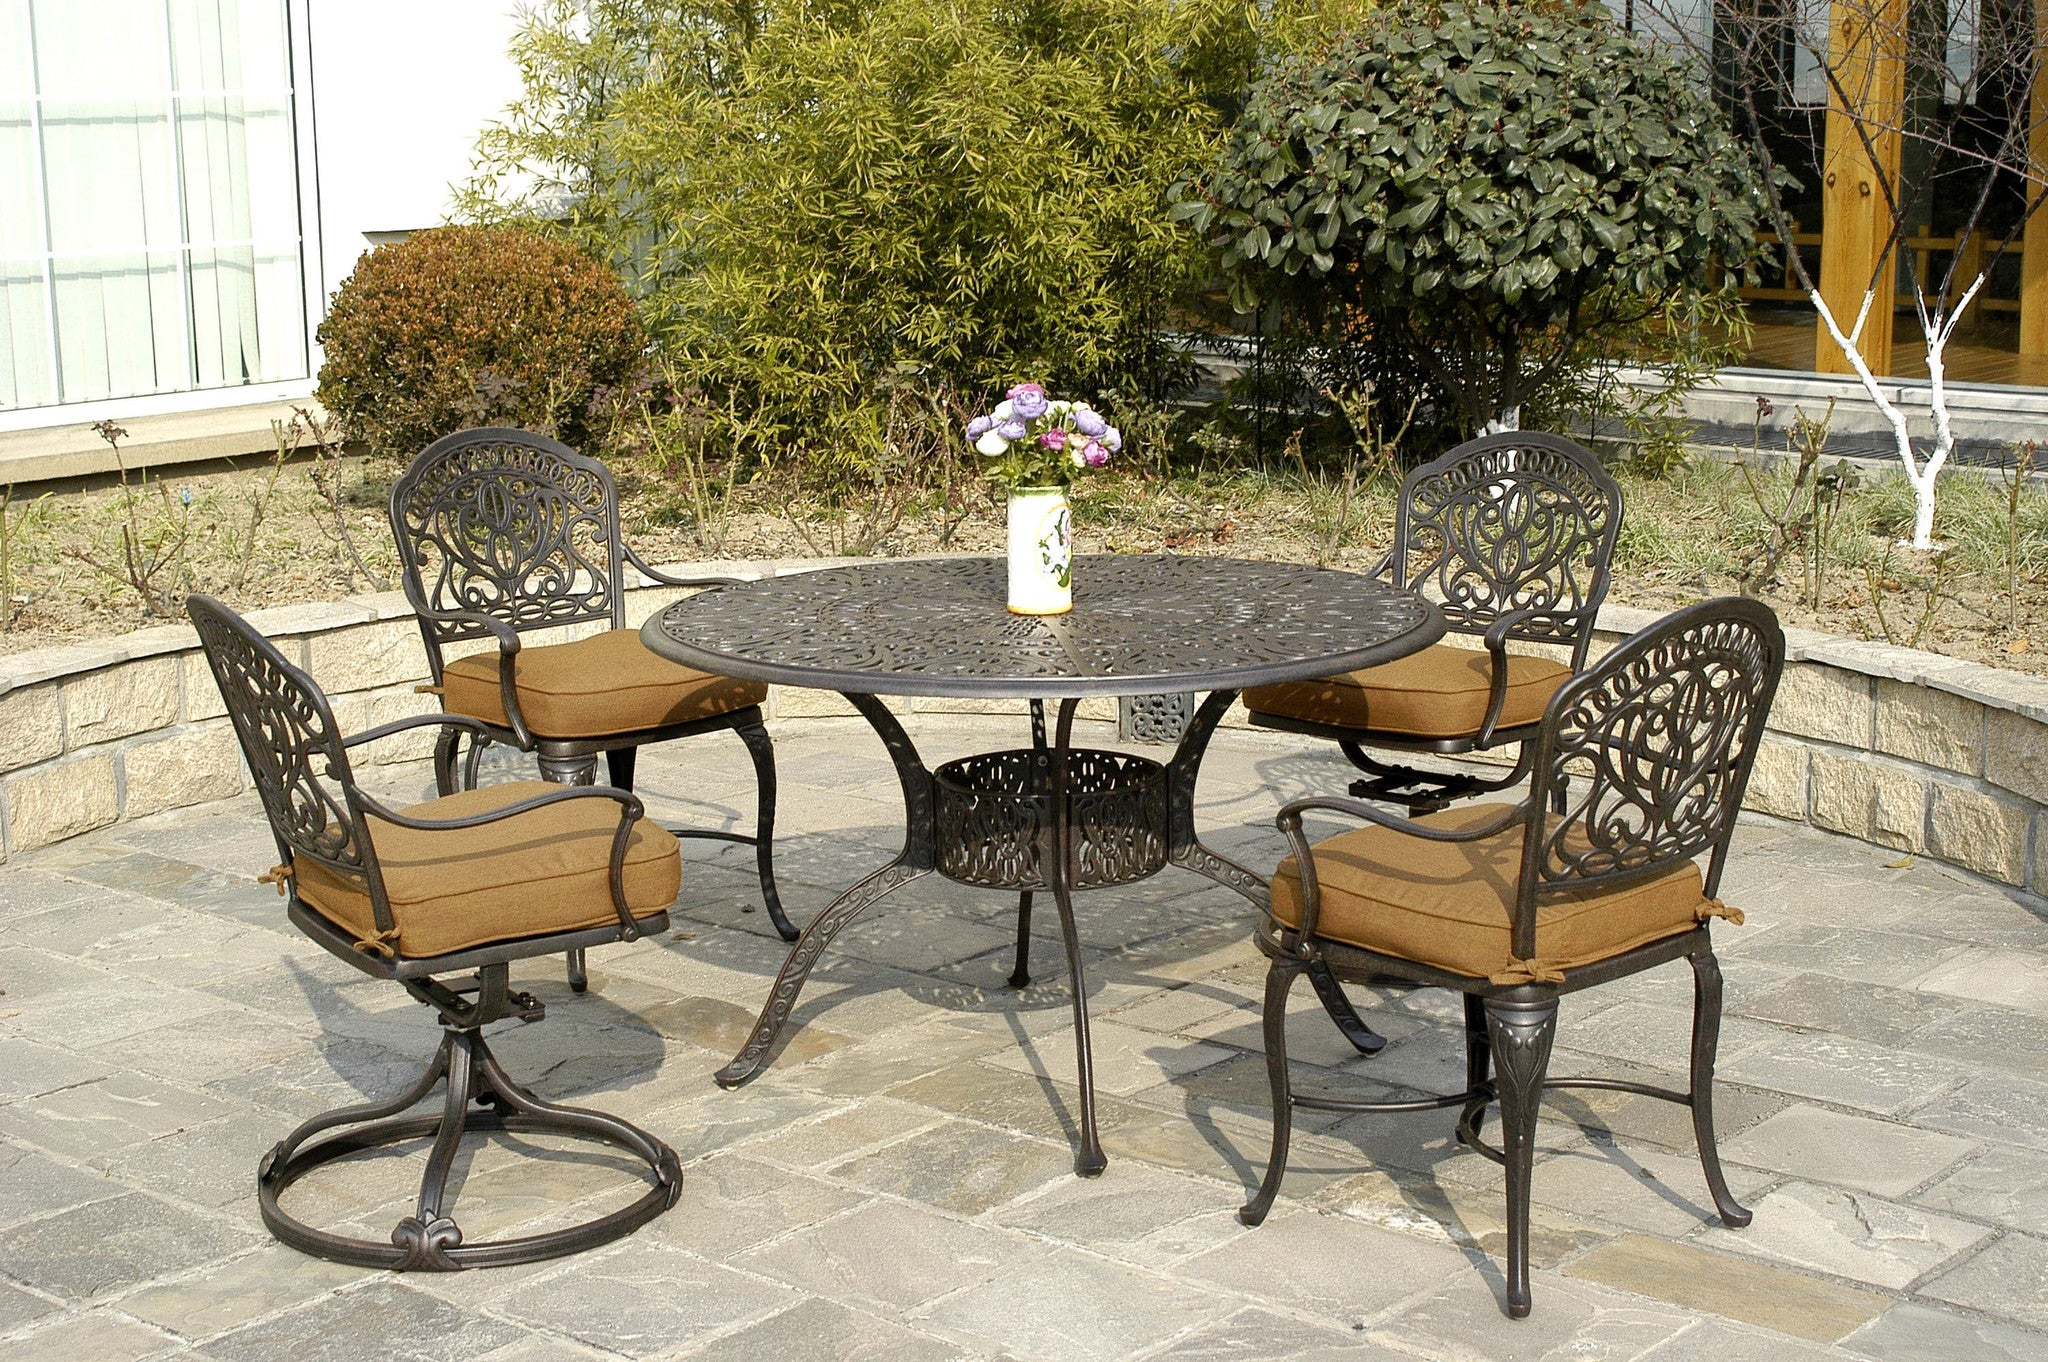 casa hanamint sunnyland new outdoor furniture design casual dsc of patio tuscany in grand